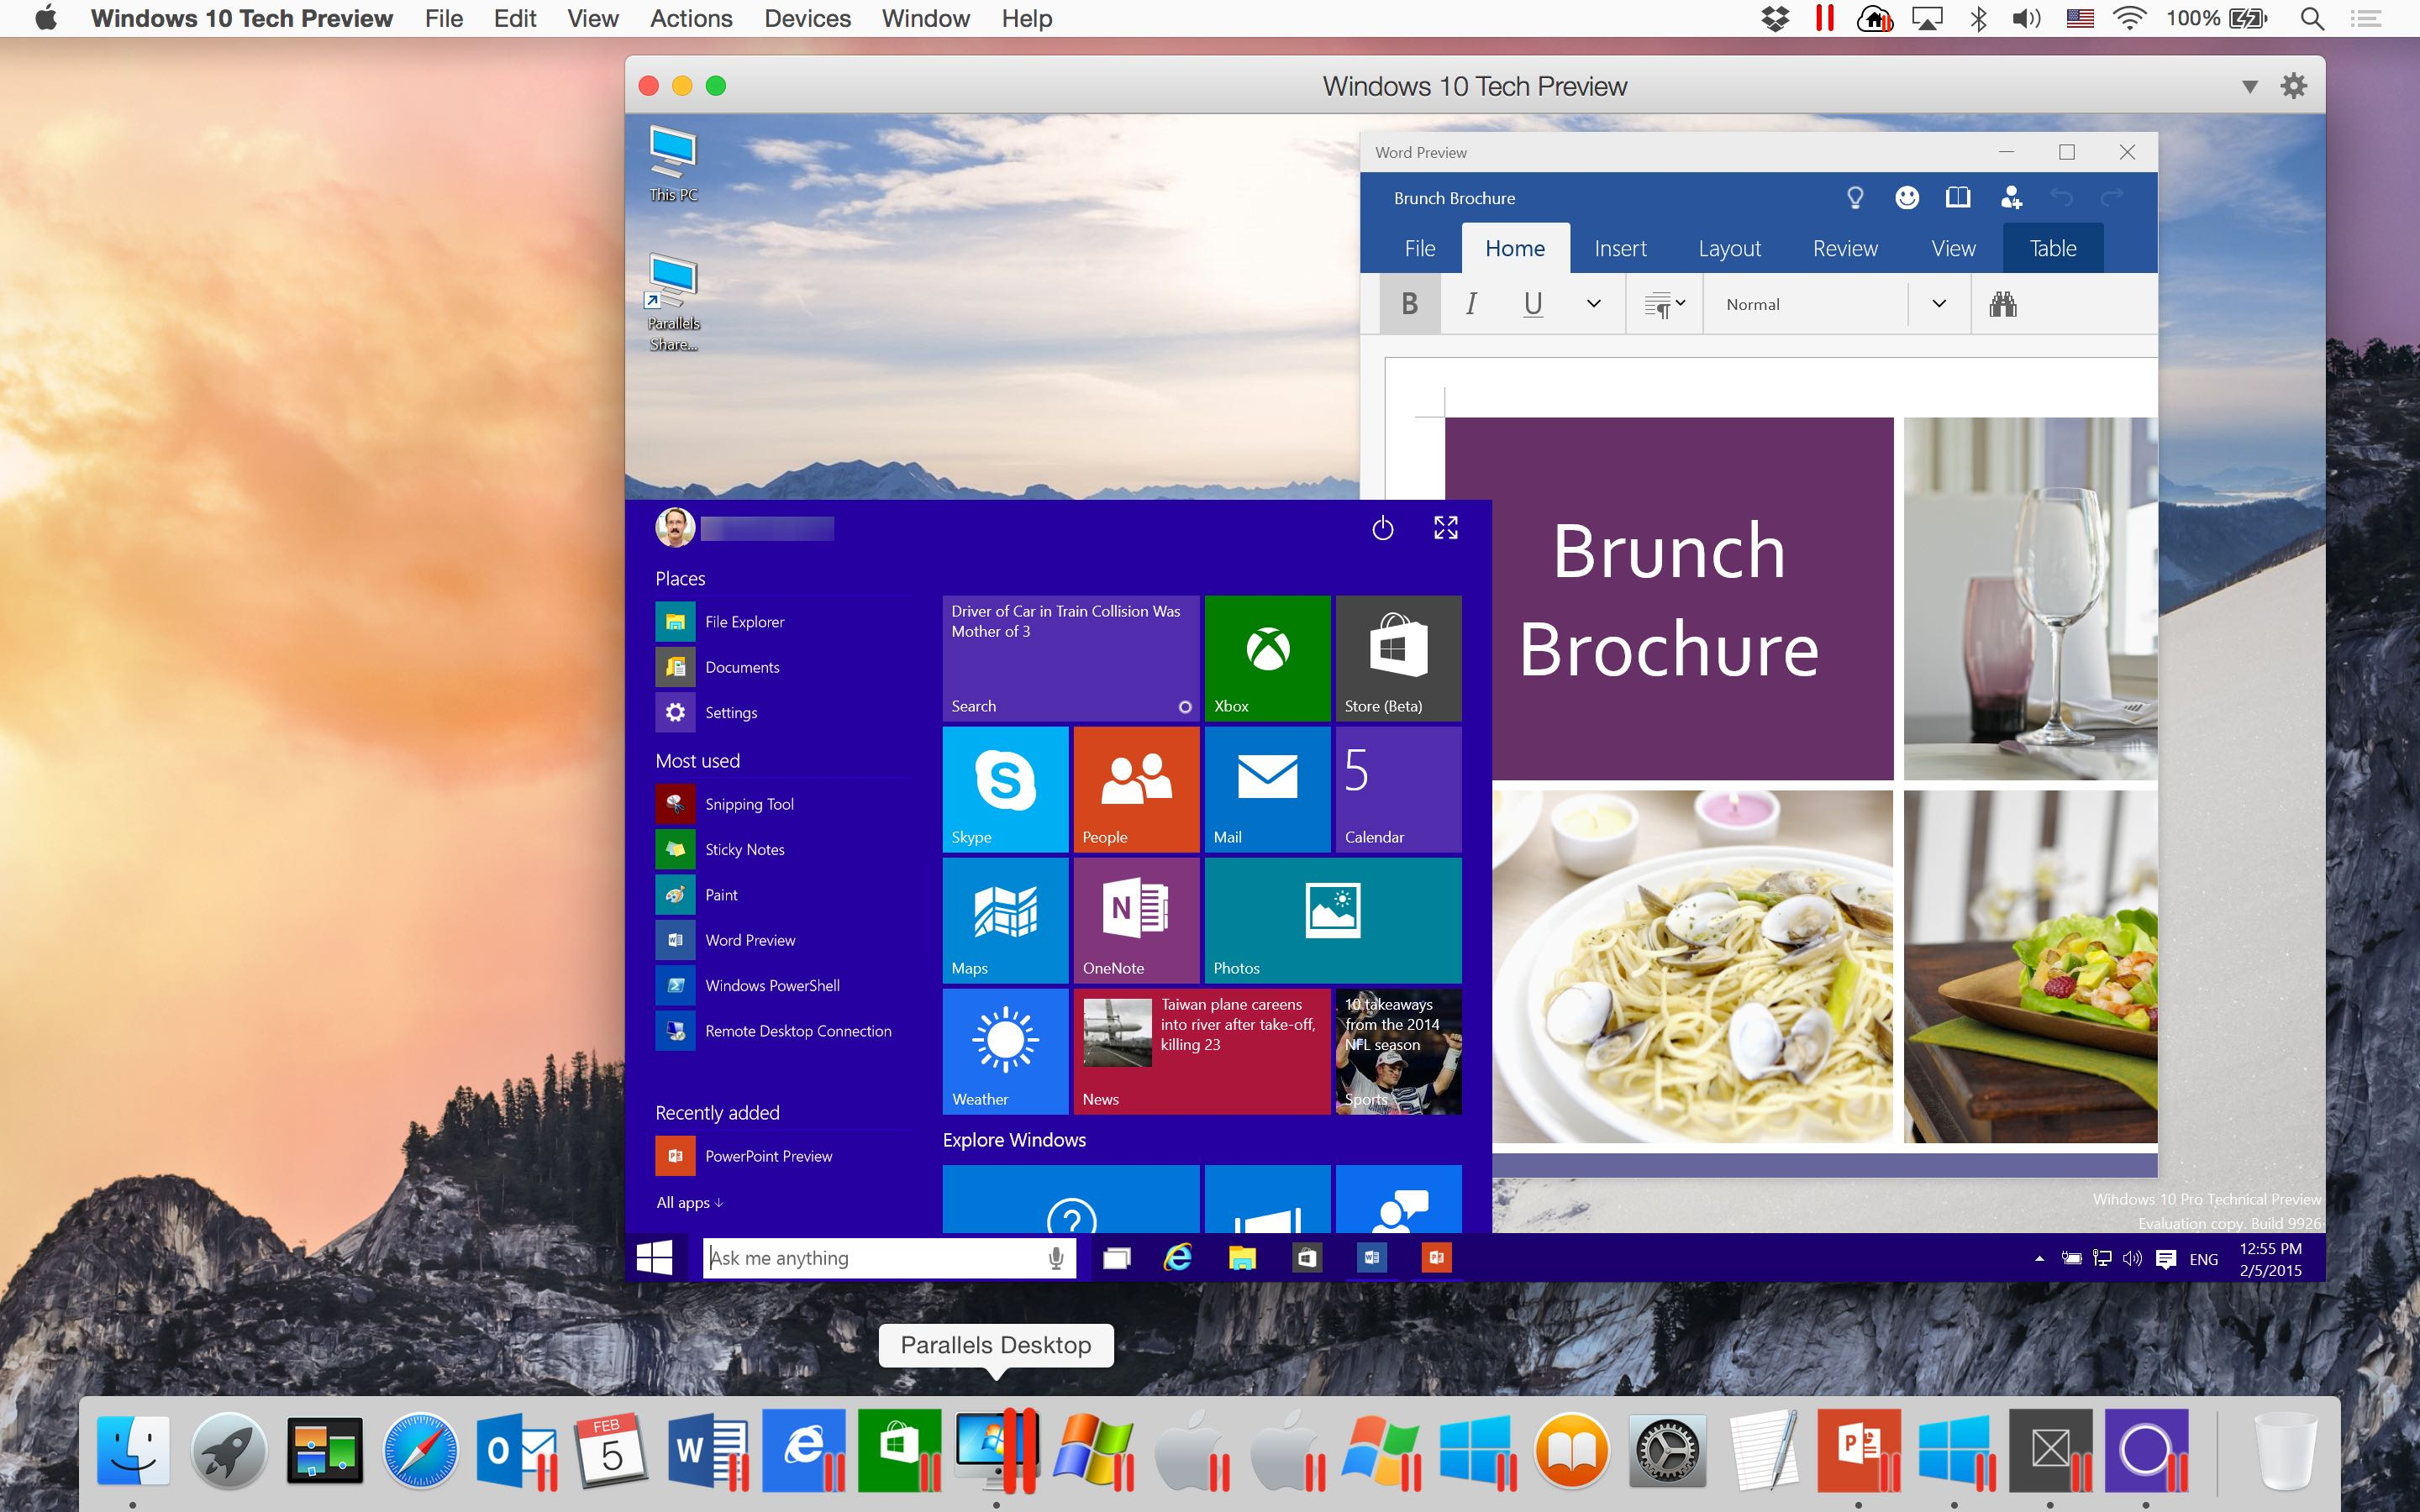 parallels desktop log in